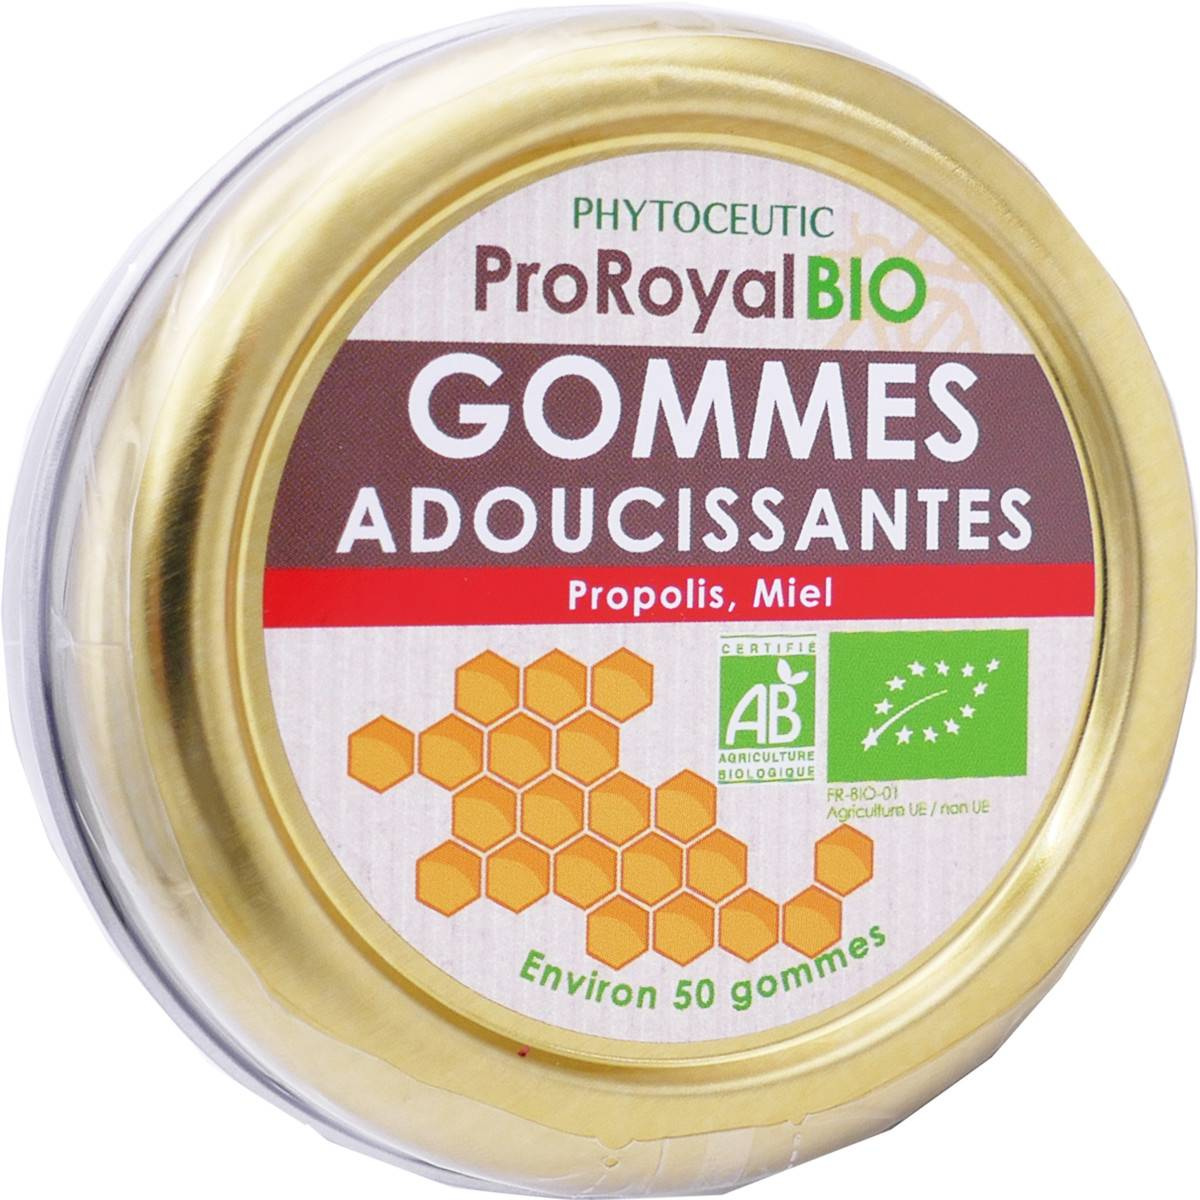 PHYTOCEUTIC Pro-royal bio gommes adoucissantes 50g